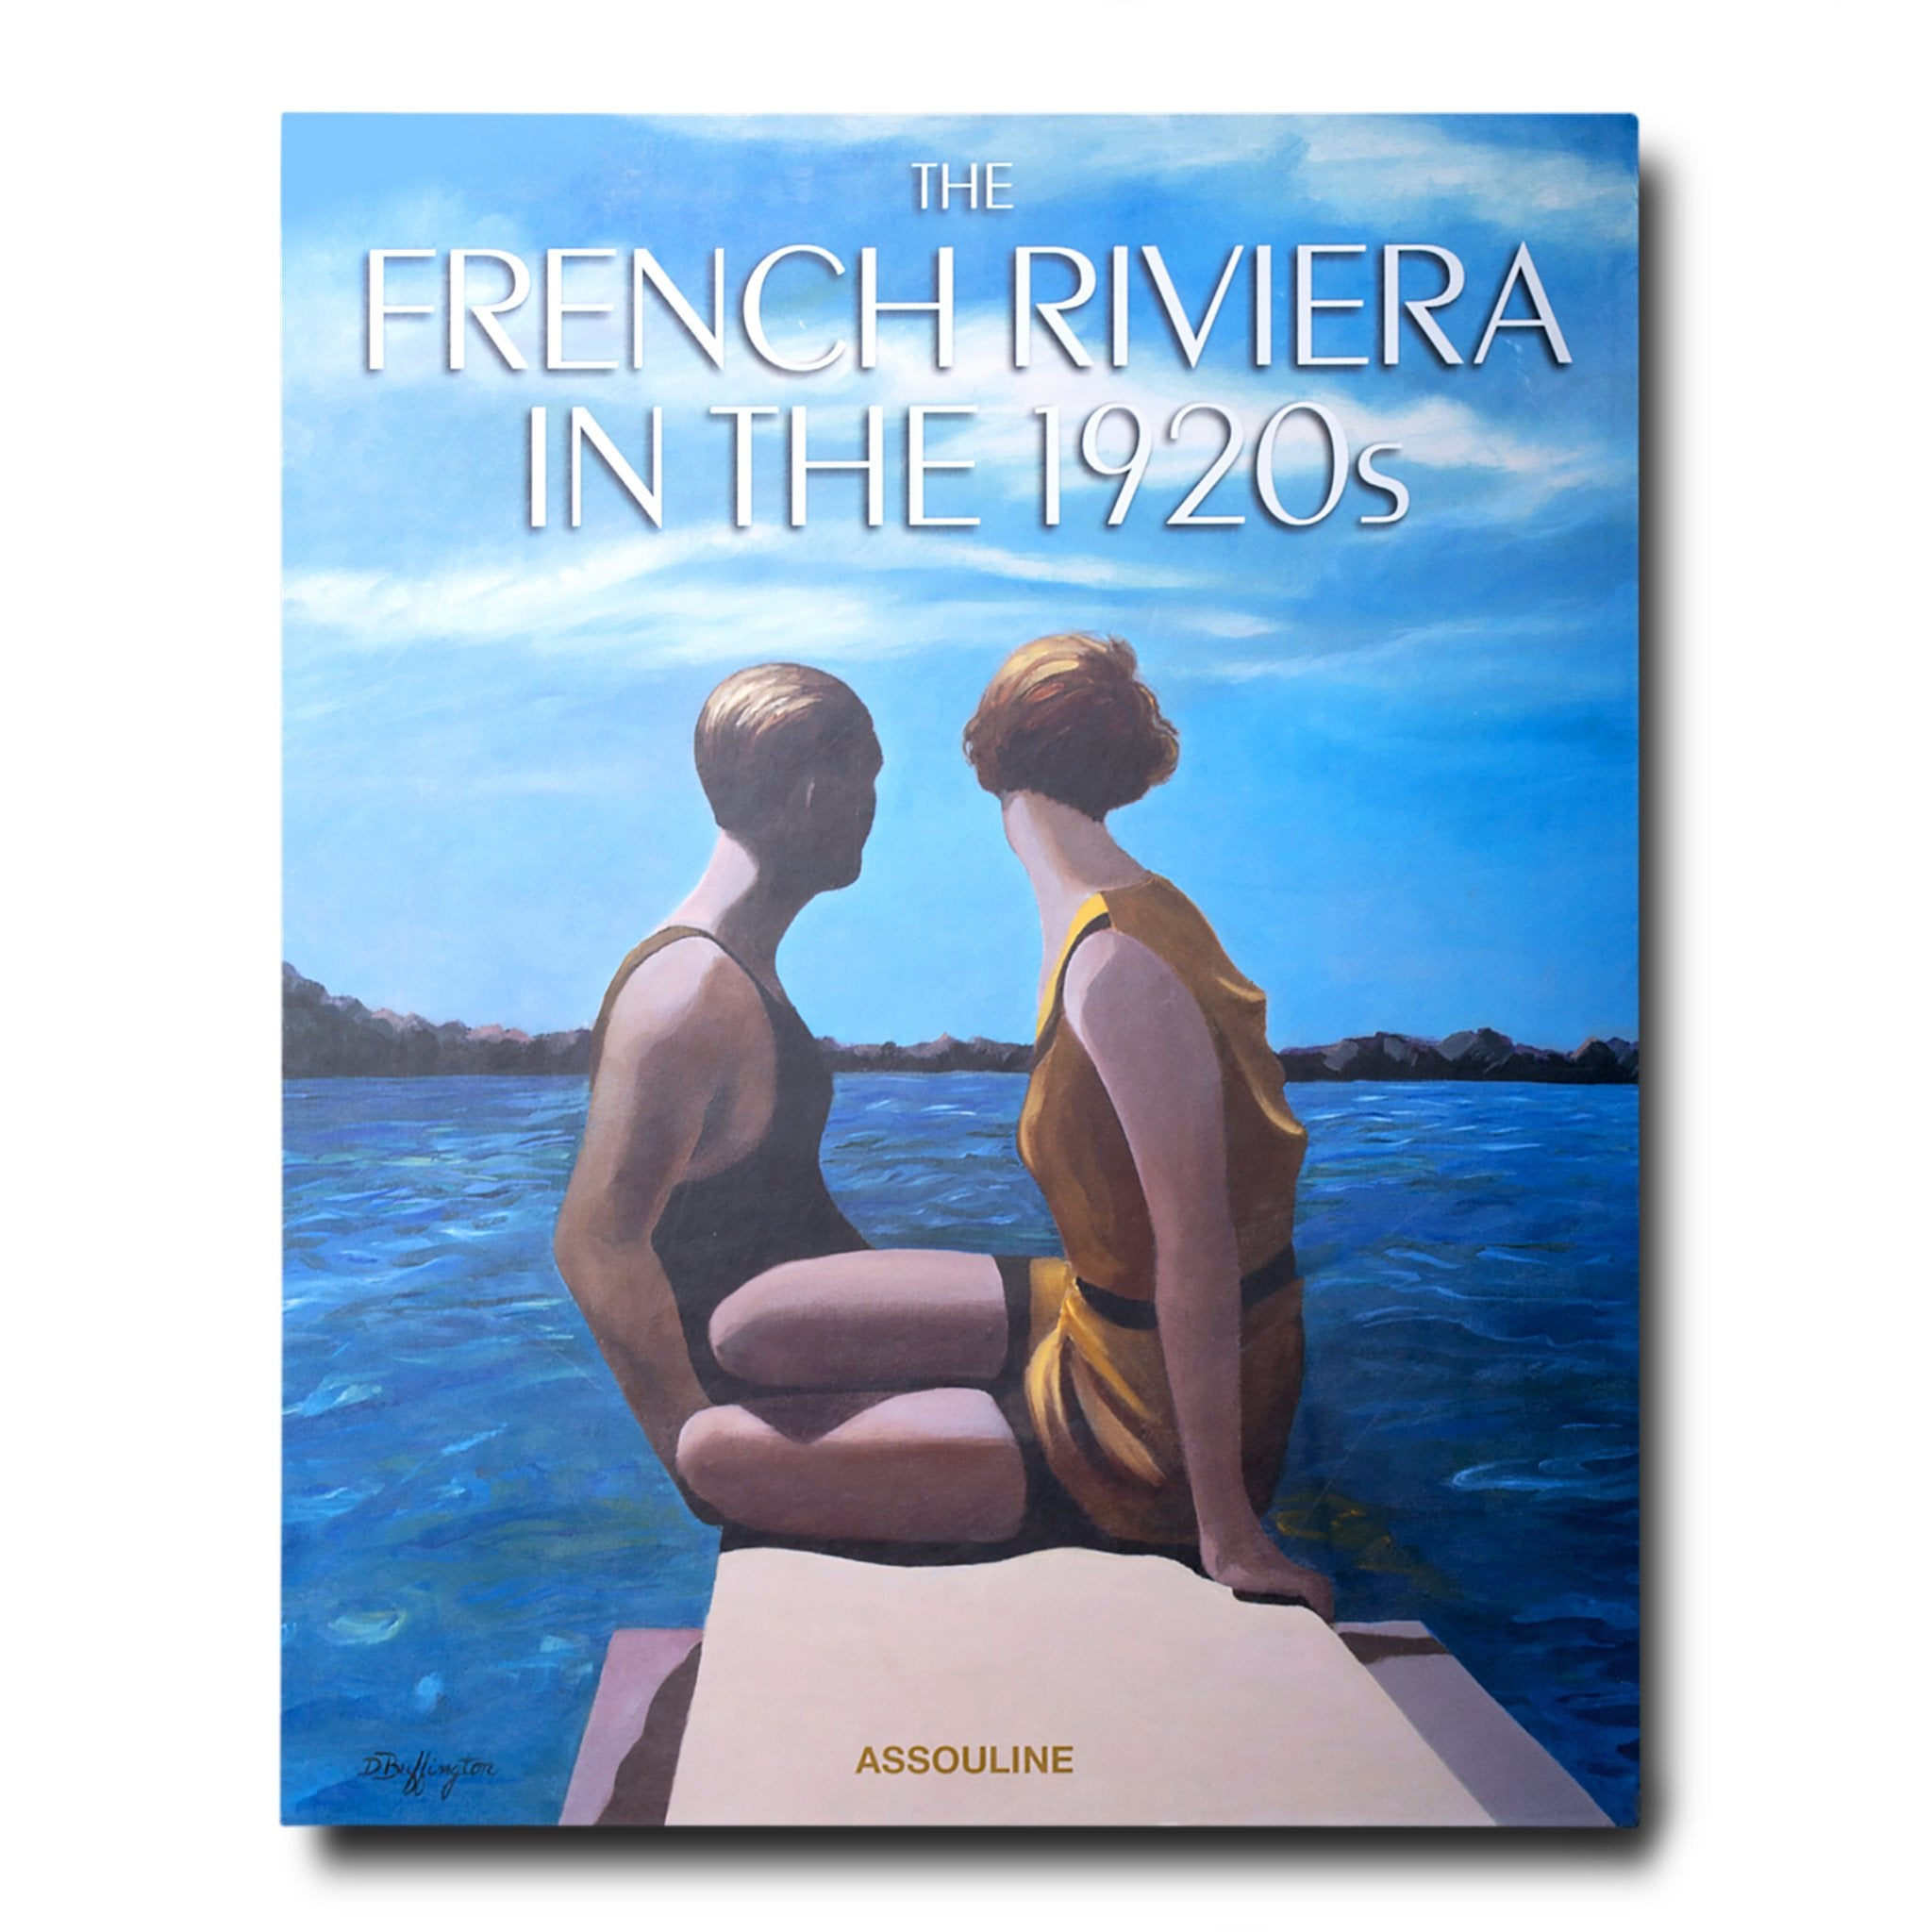 The French Riviera in the 1920s - Assouline